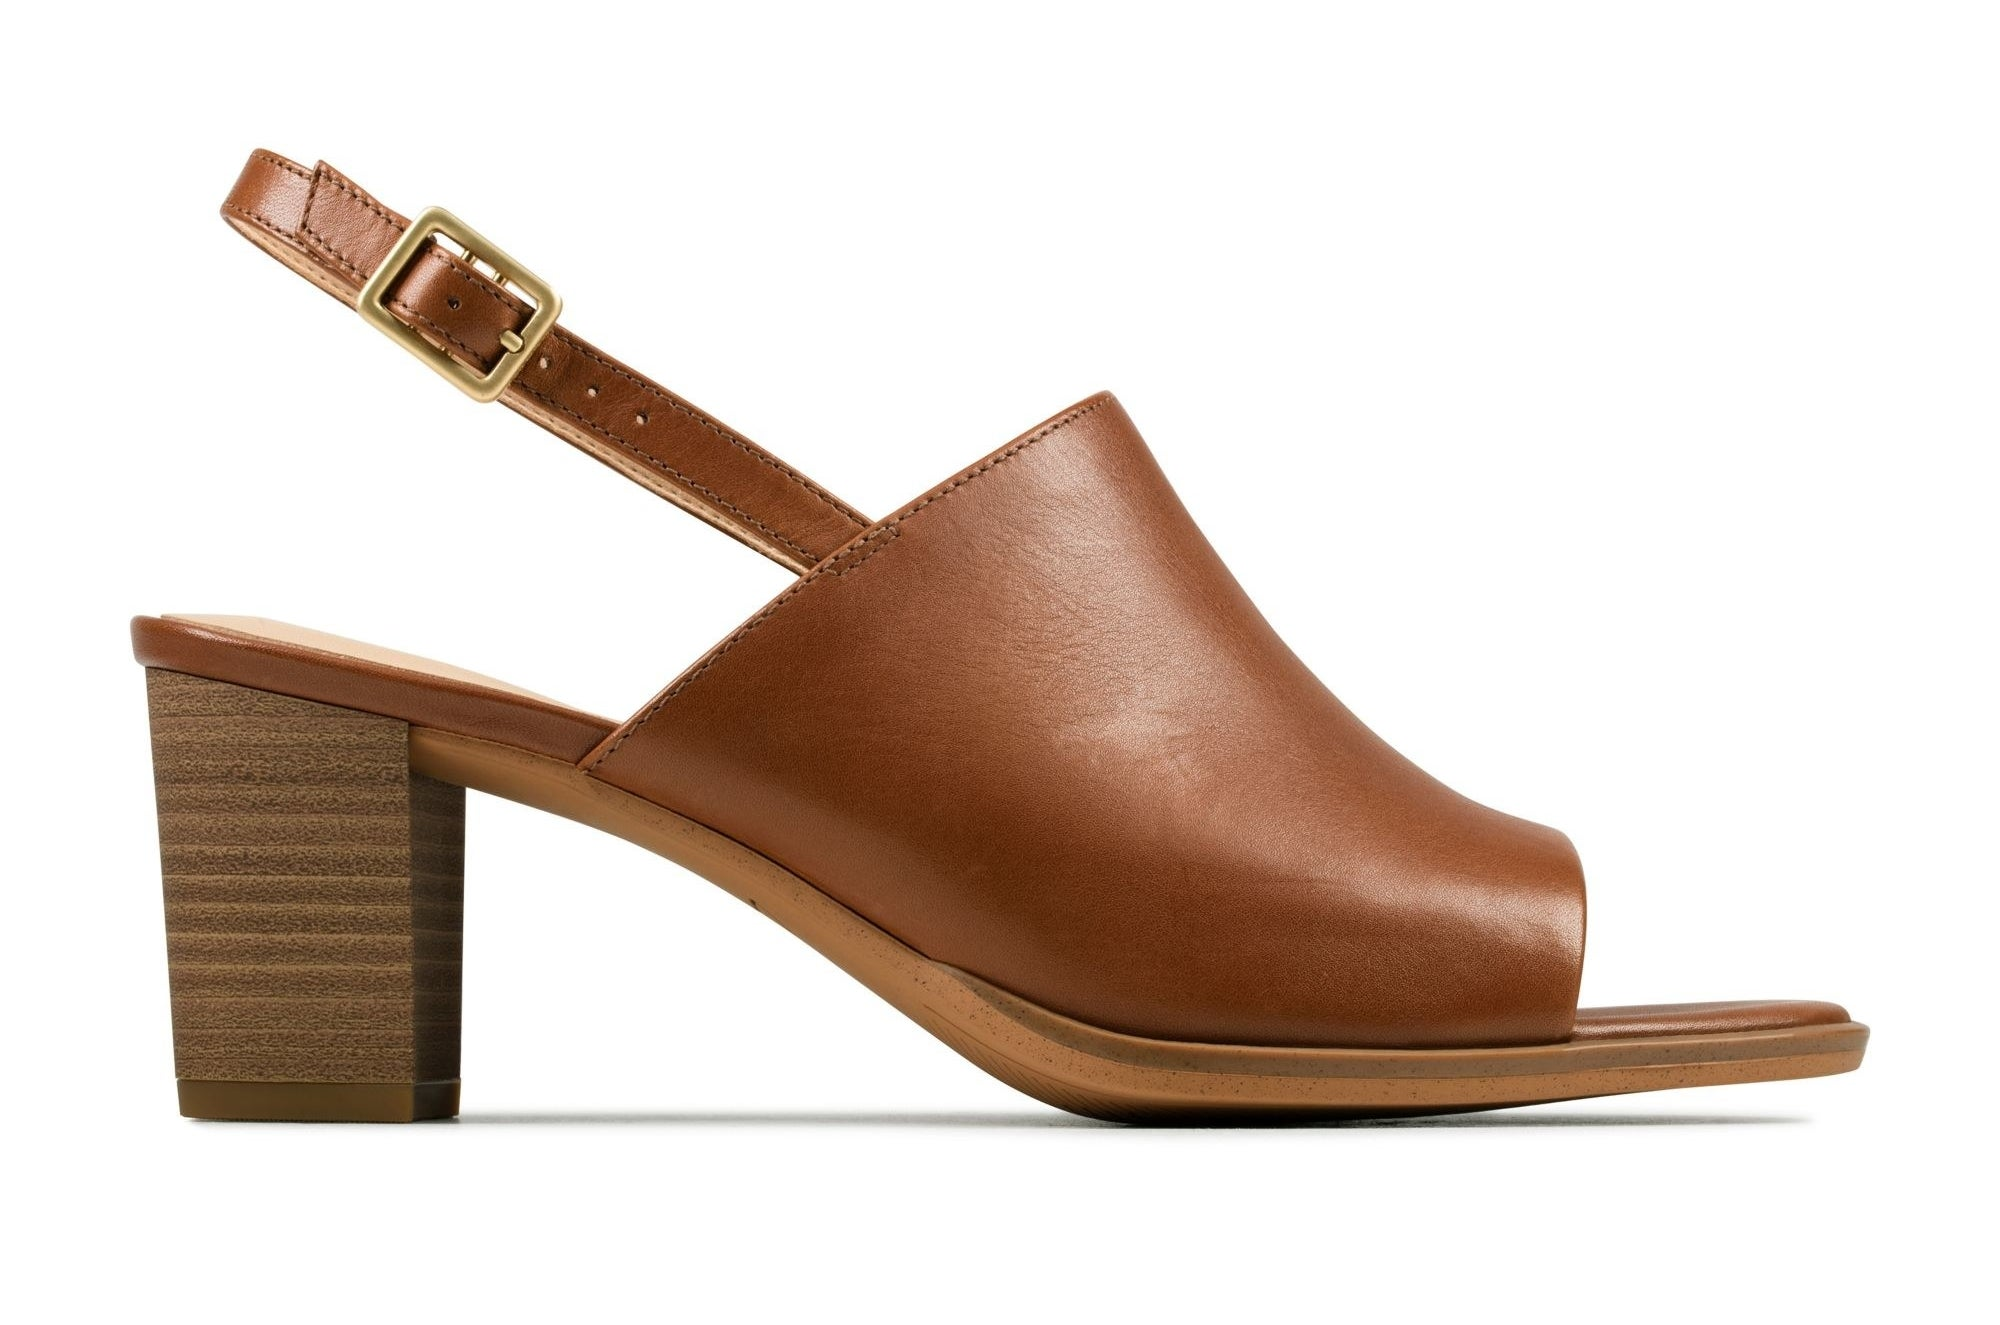 wooden high heeled sandals with sling back and brown large front and peep toe